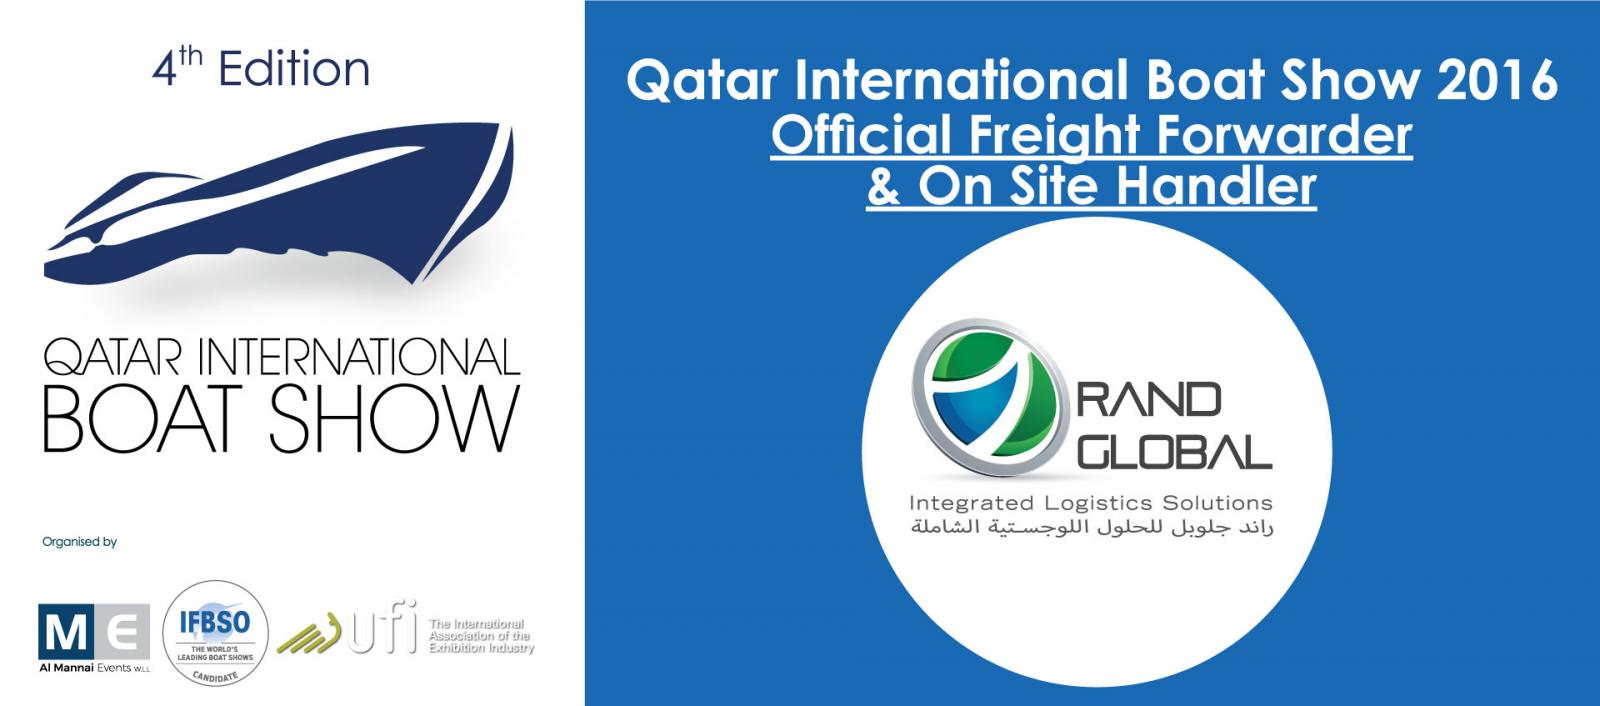 QIBS 2016 Announce Rand Global Official Freight Forwarder